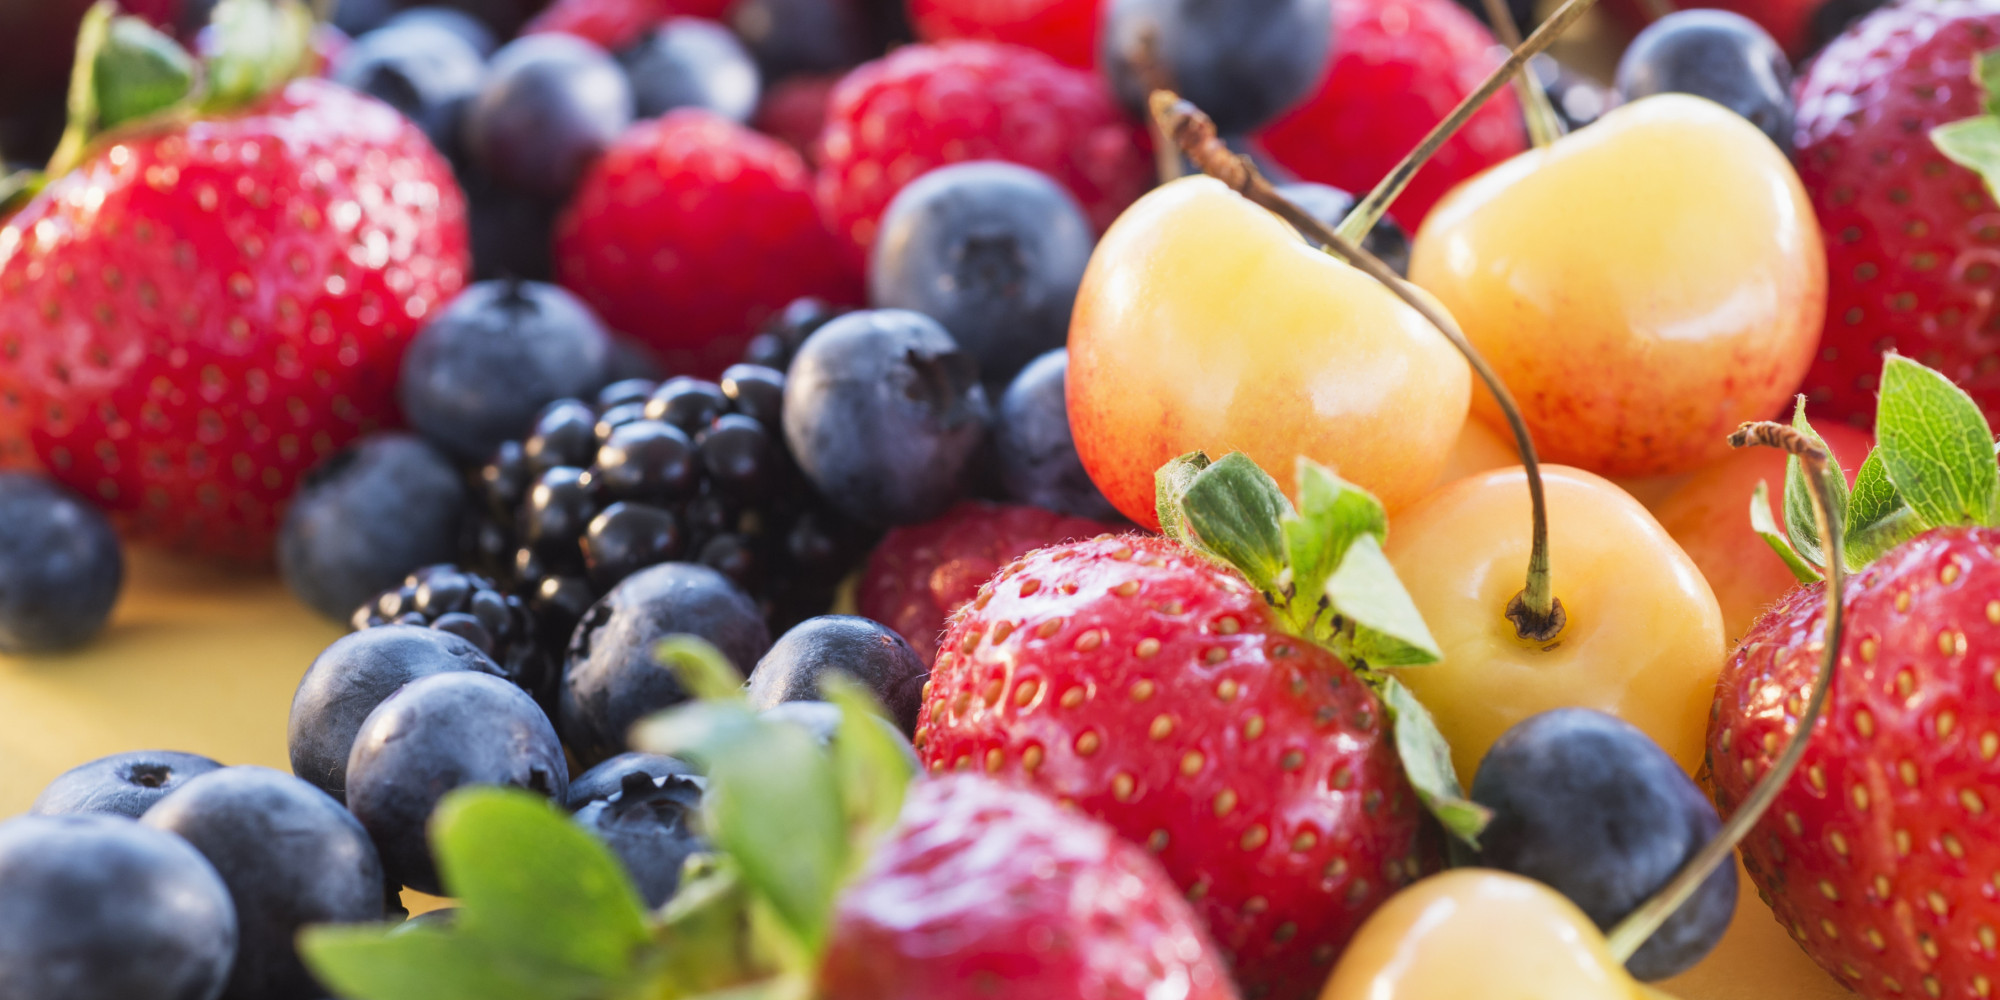 Ripe Fruit: How To Know When Produce Is Ready To Eat